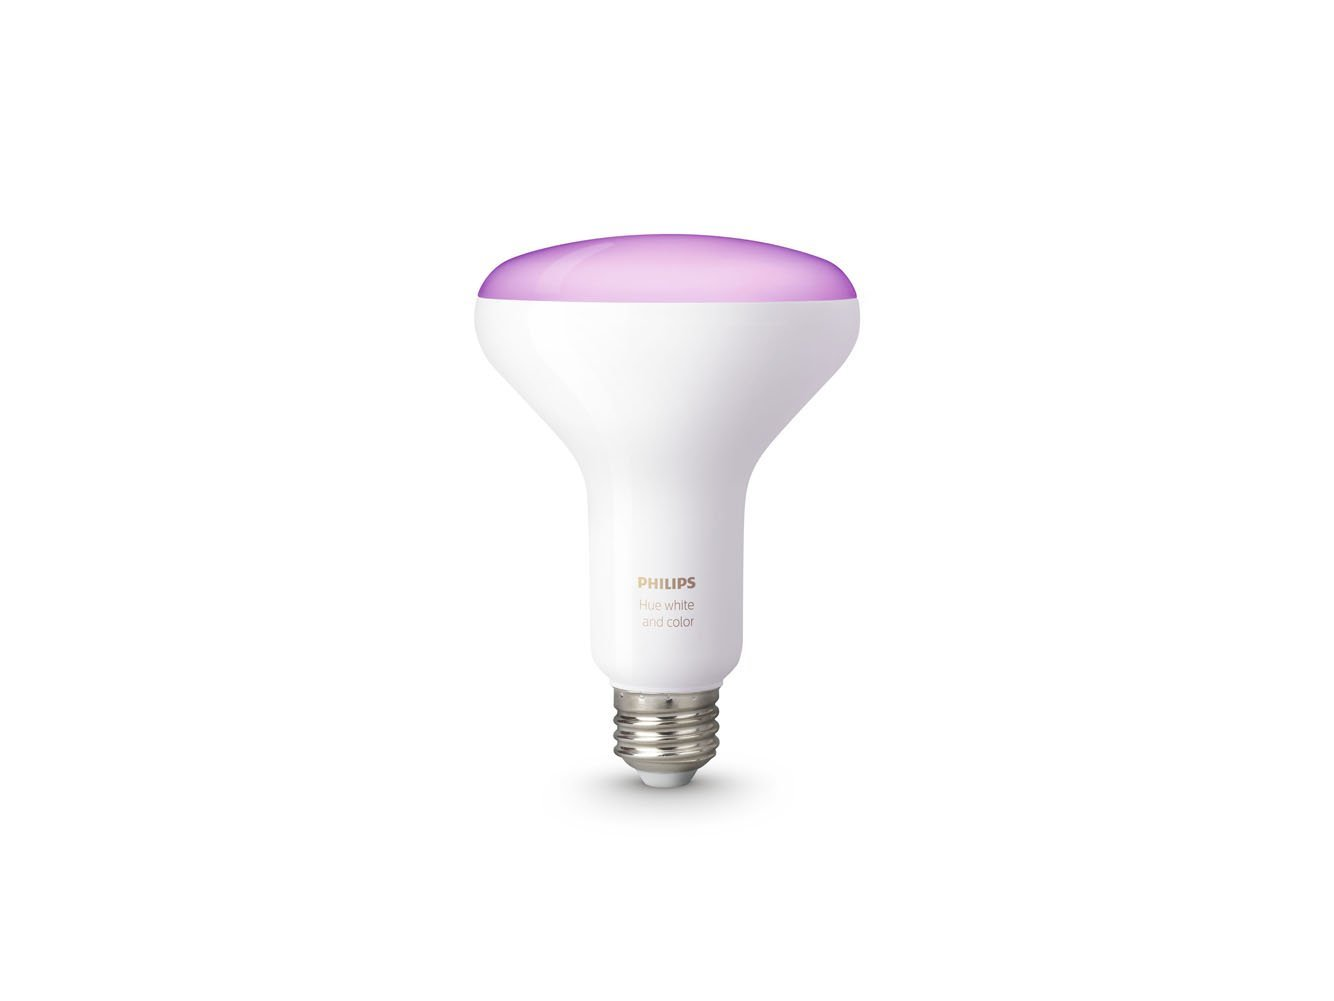 Hue Compatible Lampen : Philips hue: supported lights and devices iconnecthue